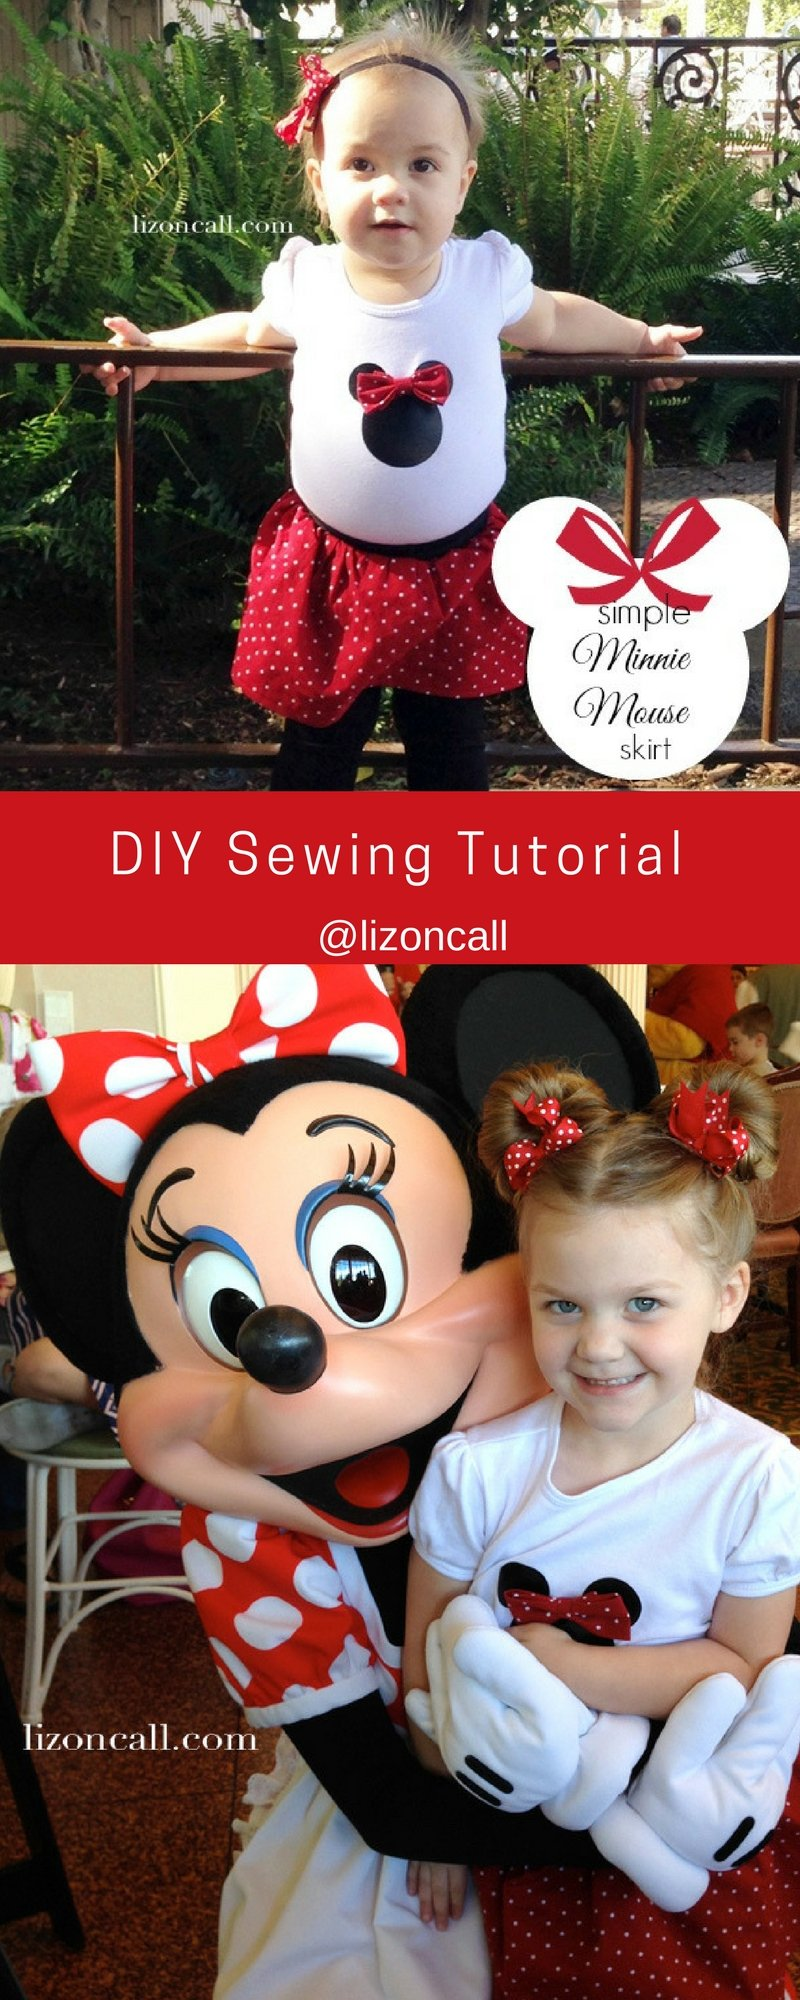 Sew up a cute Minnie Mouse skirt with this Simple minnie mouse skirt DIY tutorial